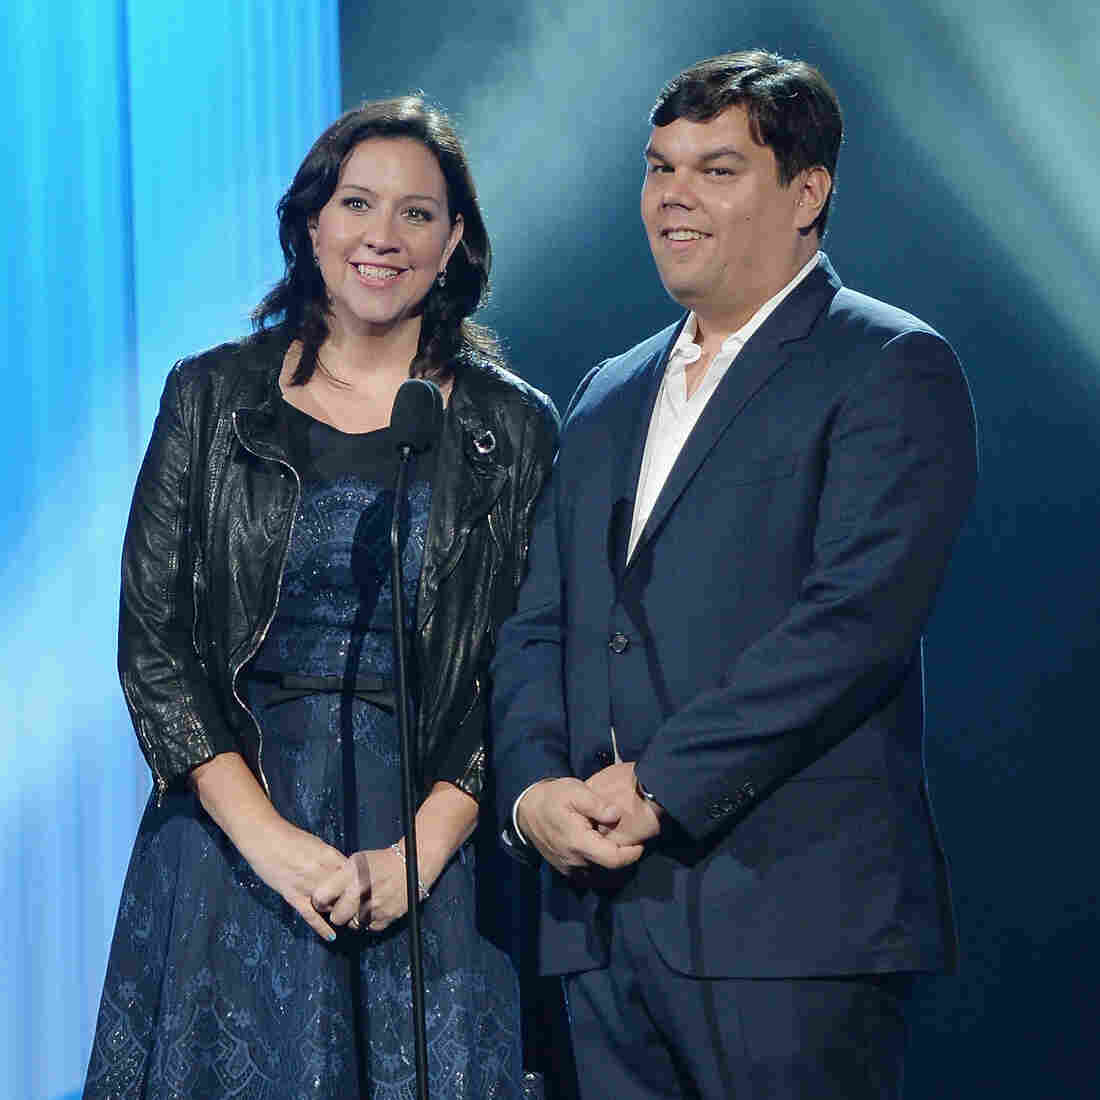 'Let It Go': A Hit Song, Spawned From Partnership